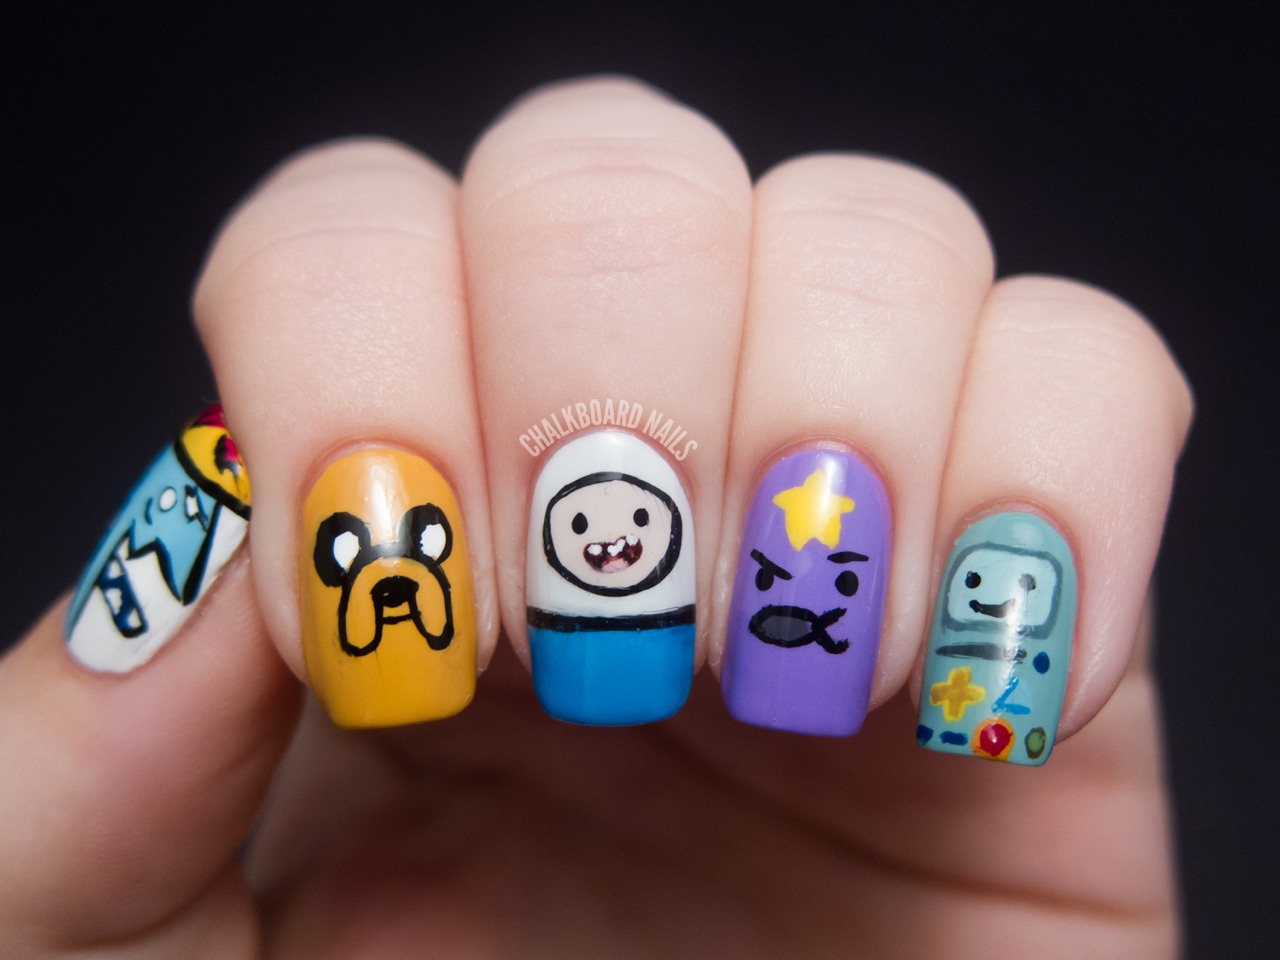 What time is it? Time to put your favorite Adventure Time characters on your nails! Use lots of vibrant polishes to recreate your favorite characters. Do just an accent nail or do every nail with a different character. So many cute combos!